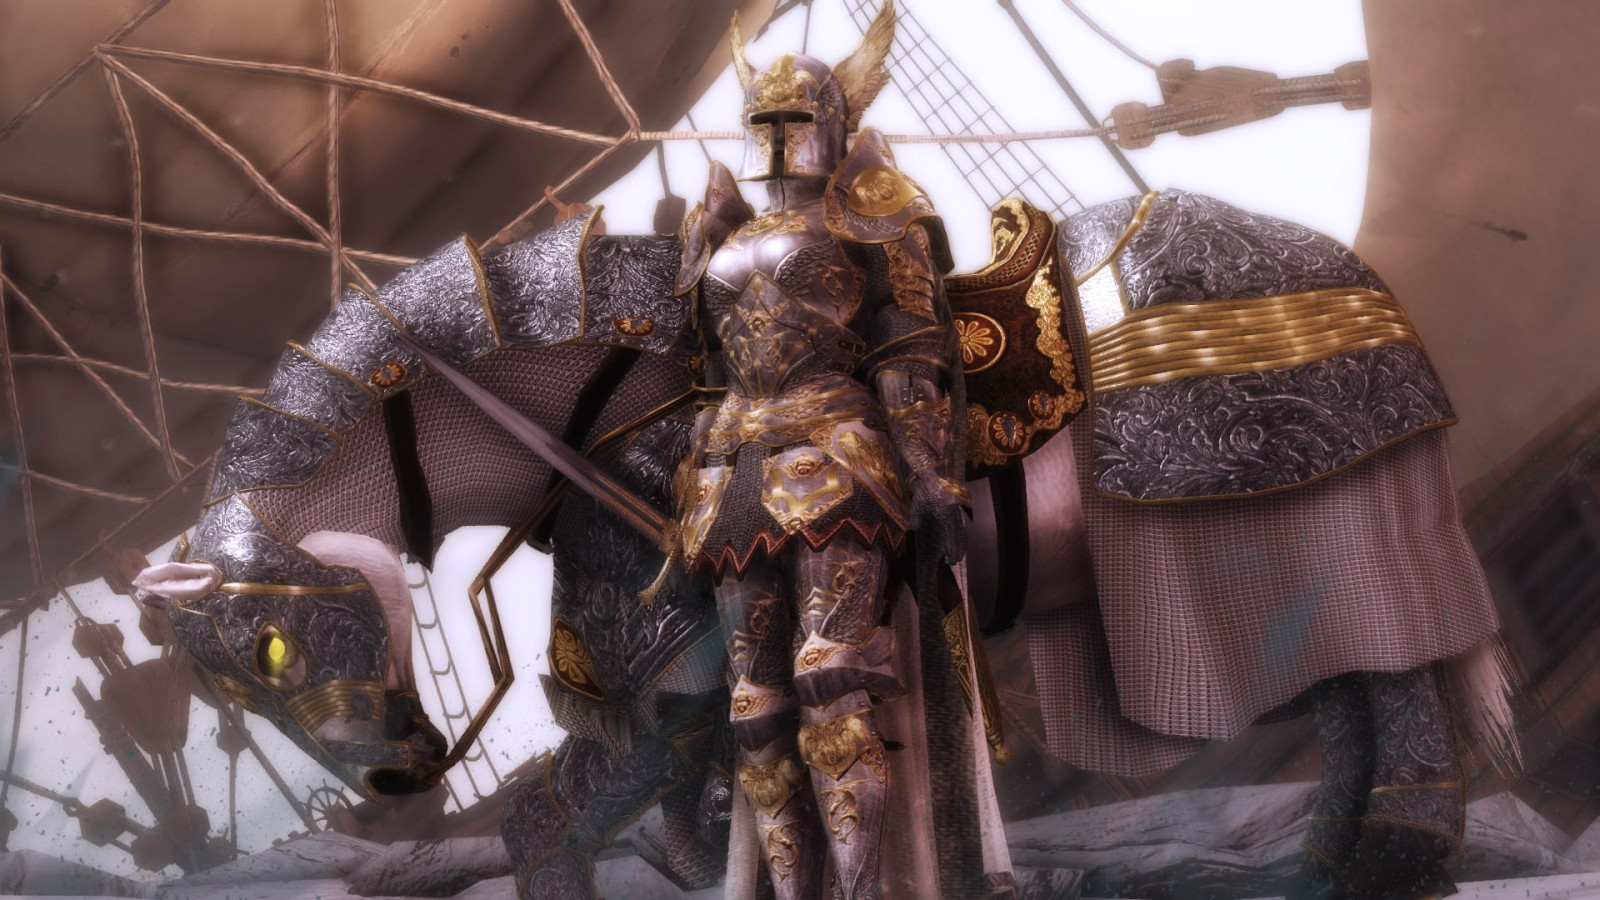 Skyrim Wallpaper Hd 1600x900 Wallpaper Ship Boat Horse Sculpture Statue Paladin